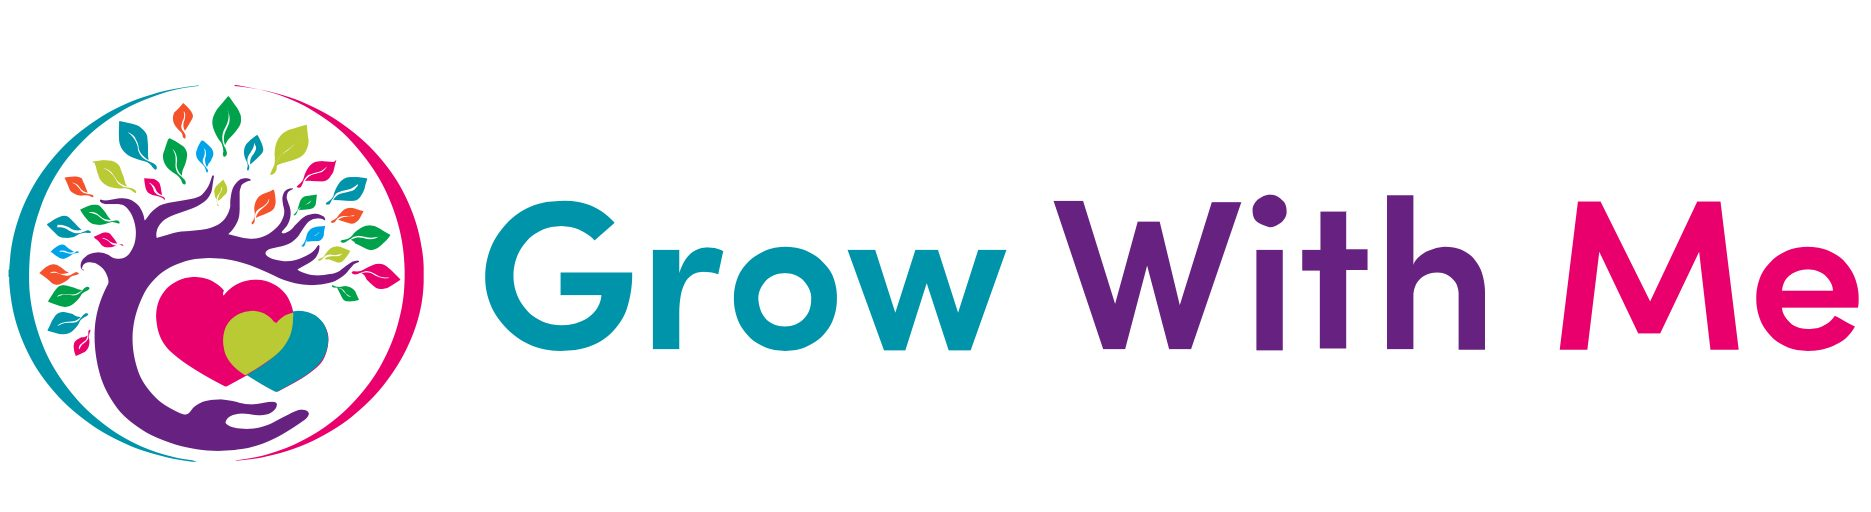 Social Development Specialists 'Grow With Me' Select Acuant to Verify Users and Establish Trust to Protect Special Needs Children and their Community